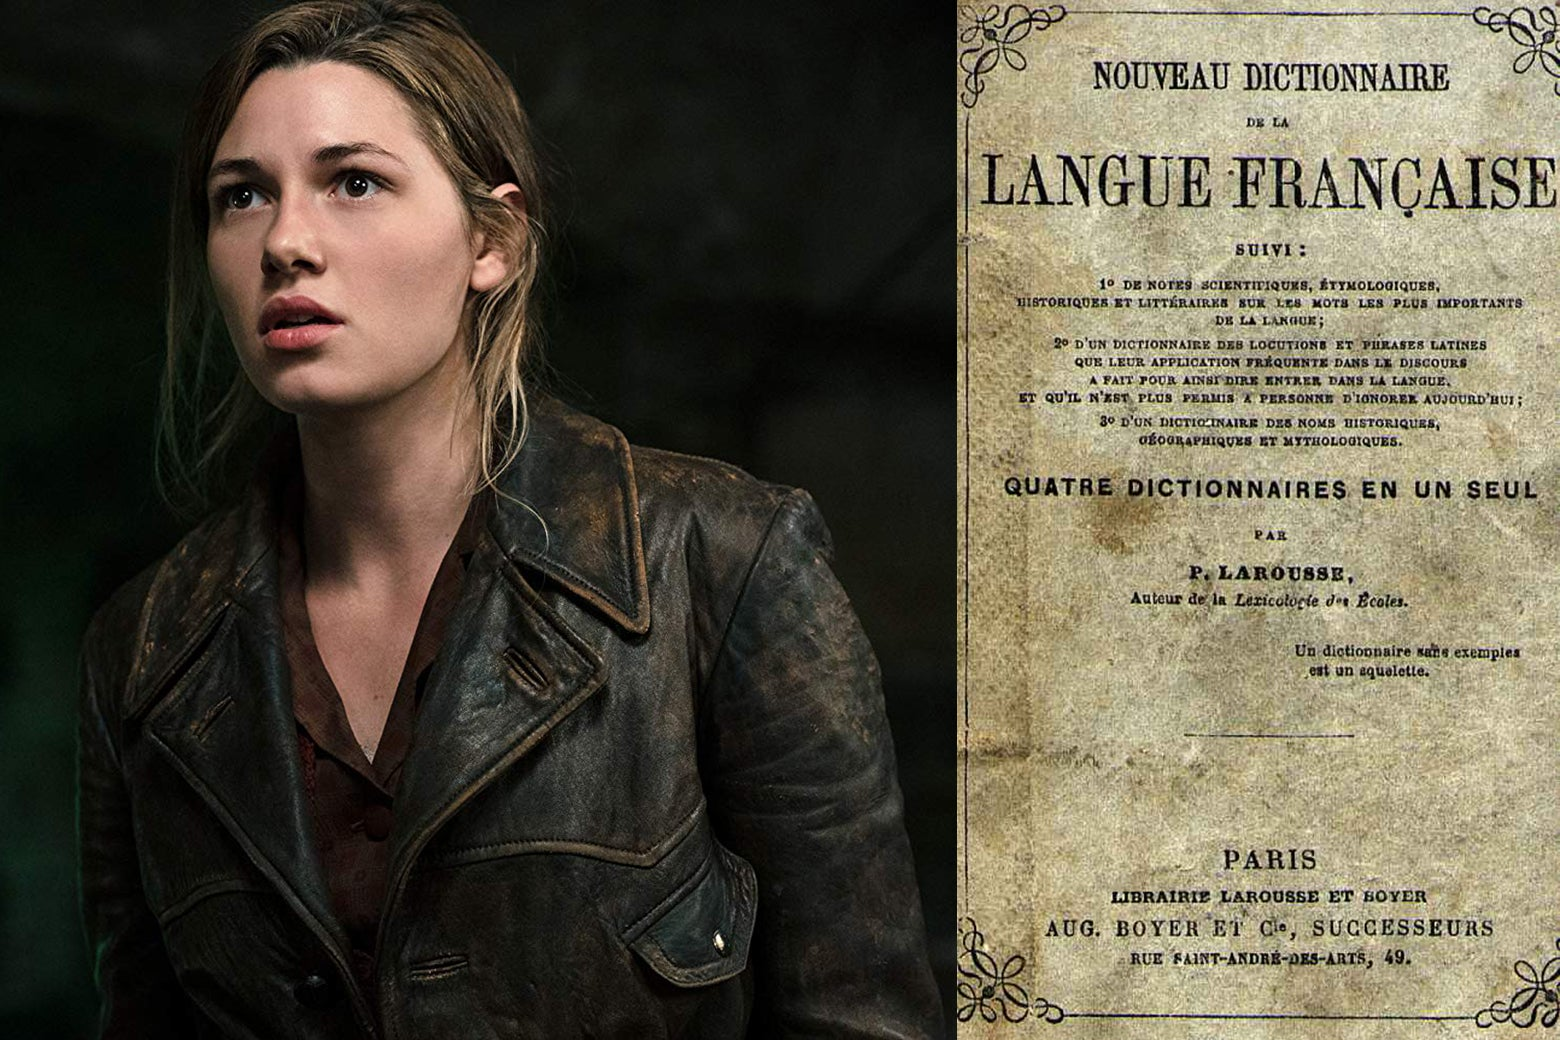 Actress Mathilde Ollivier, in a still from Overlord, and the title page of a French dictionary.